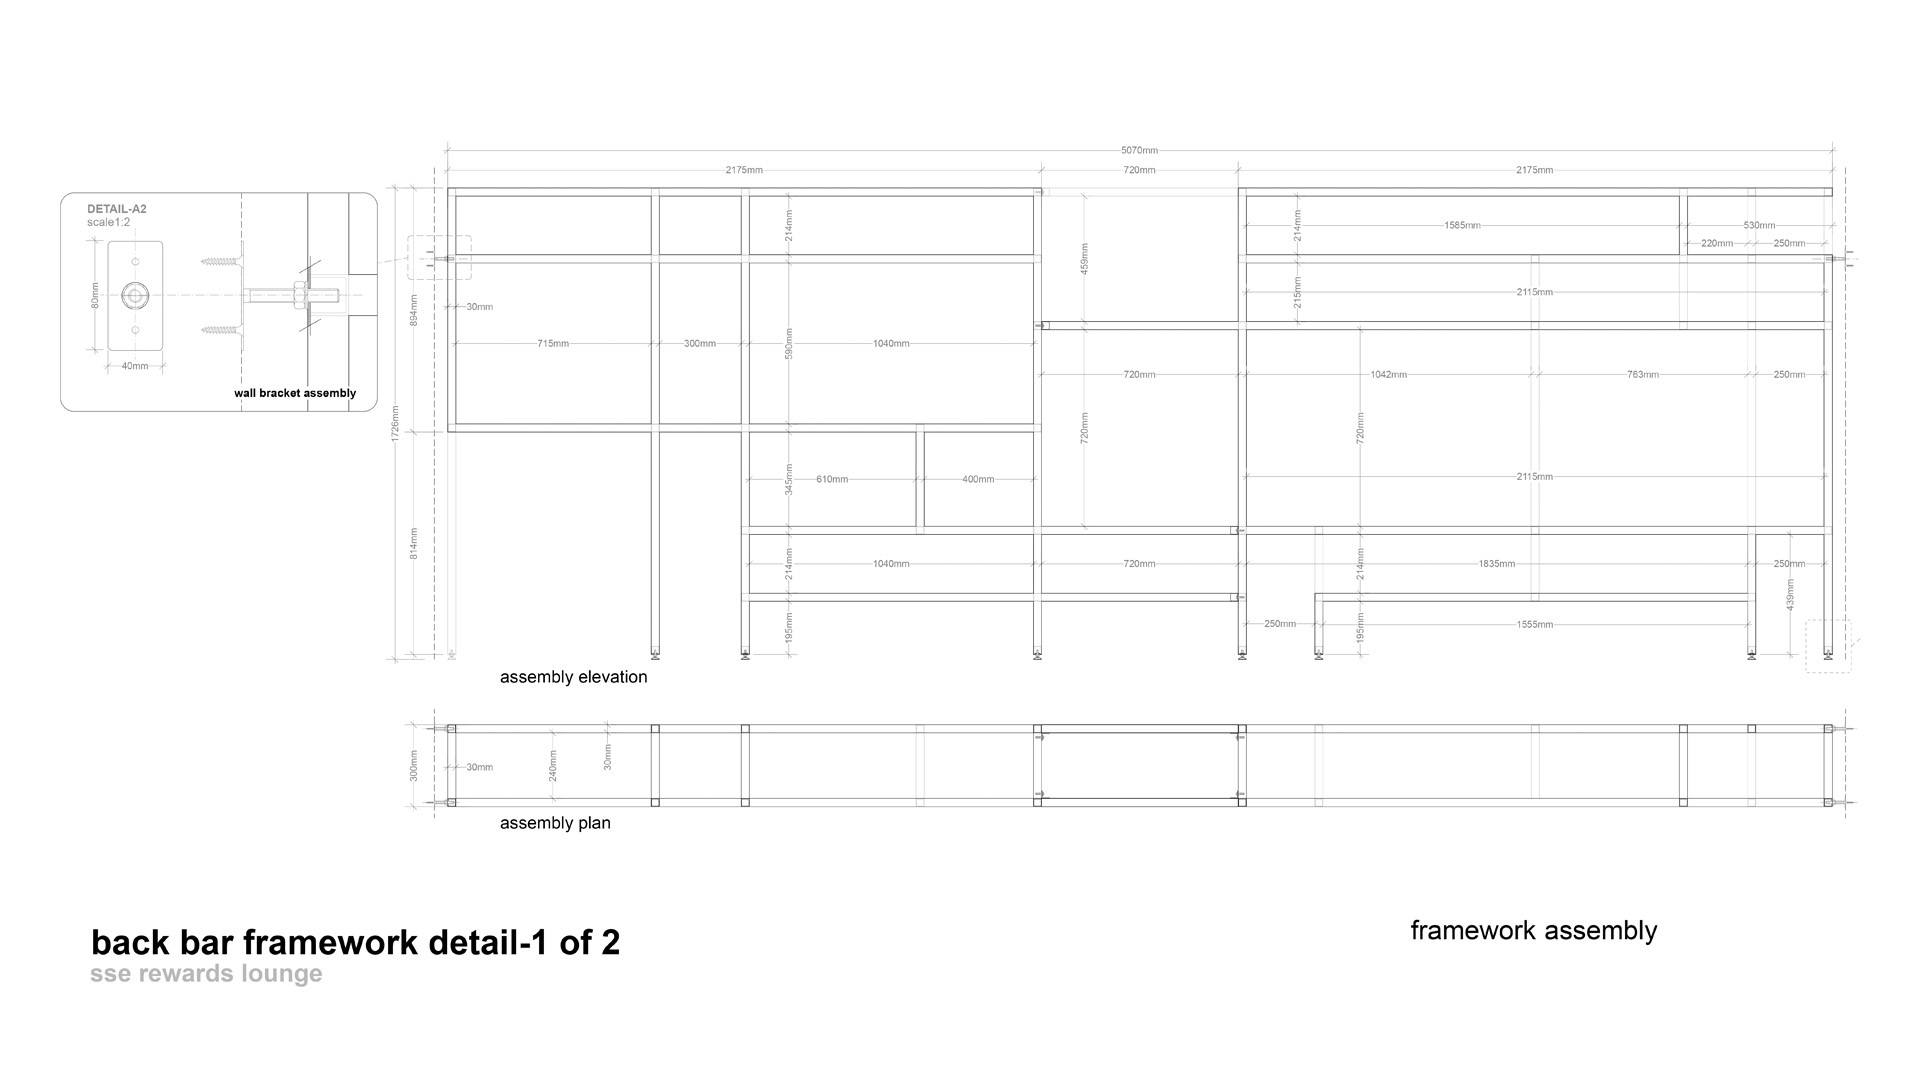 Technical drawing for Rewards Lounge in the SSE Arena Belfast